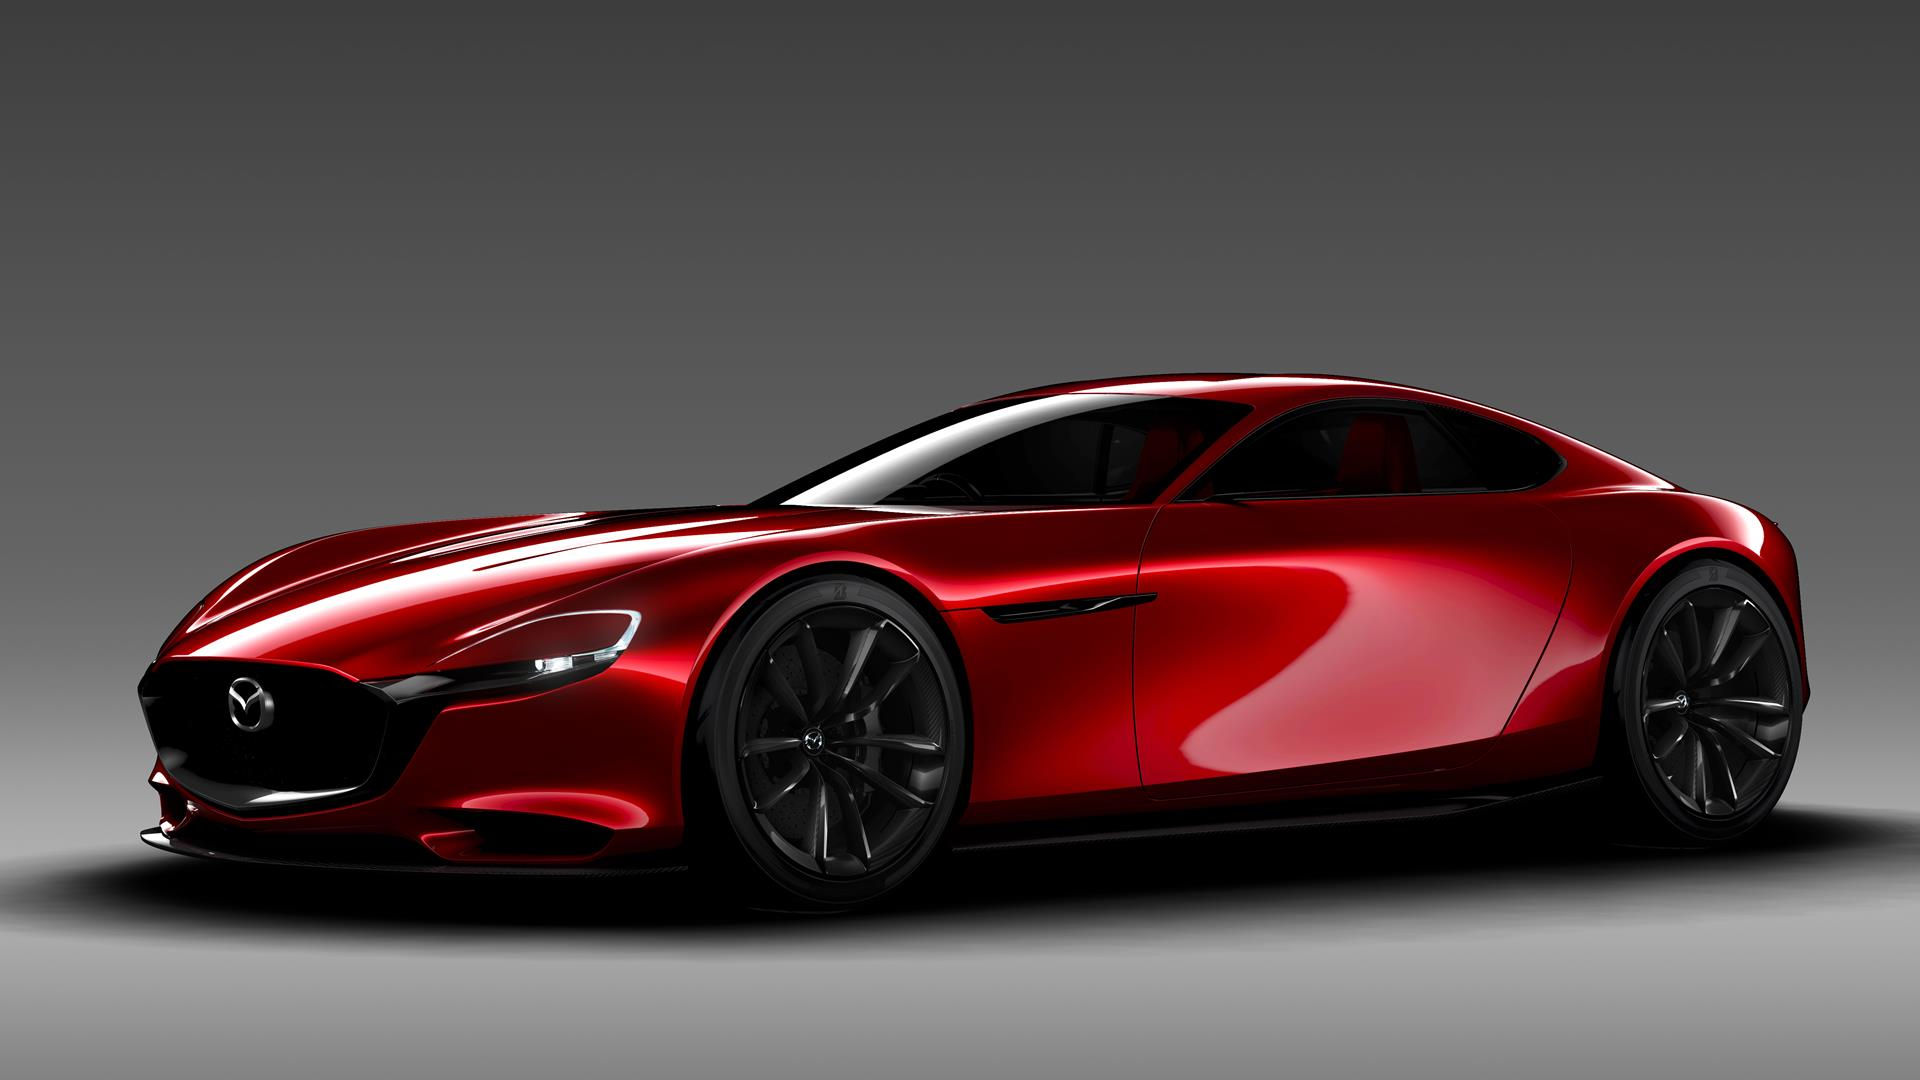 2015 Mazda RX-VISION Concept Wallpaper and Image Gallery